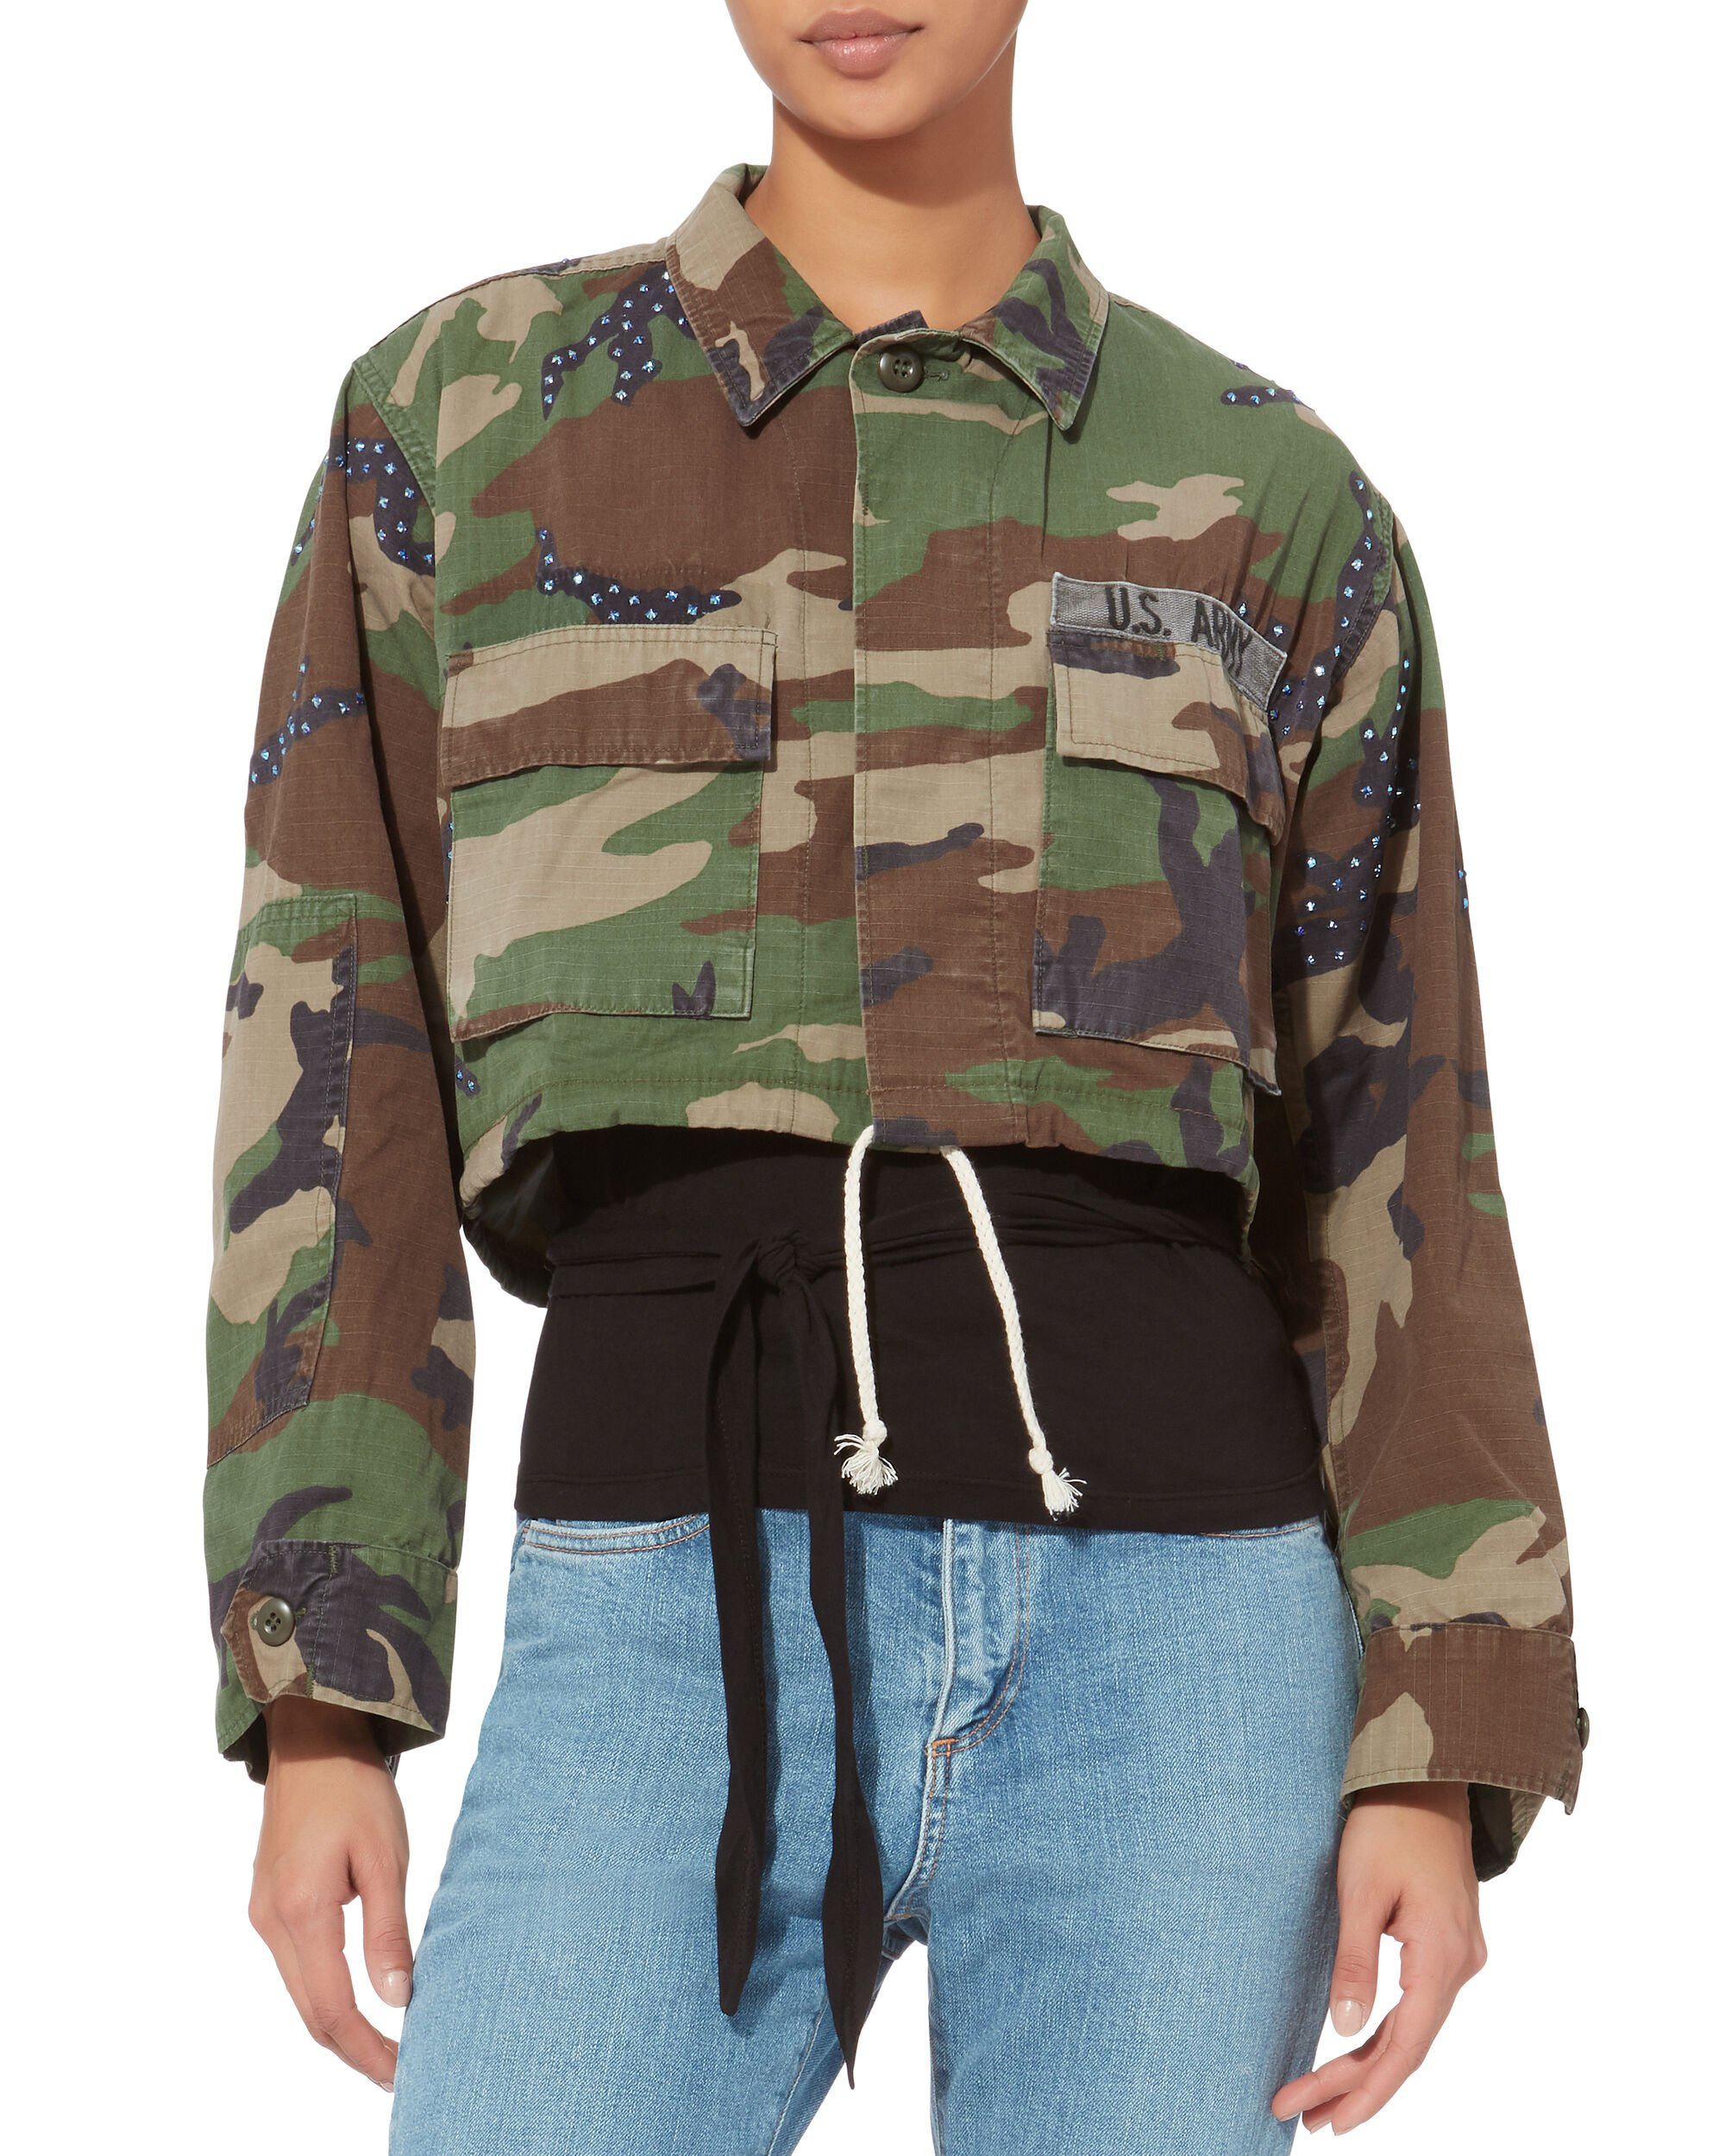 Janet Lapis Cropped Camo Jacket, MULTI, hi-res